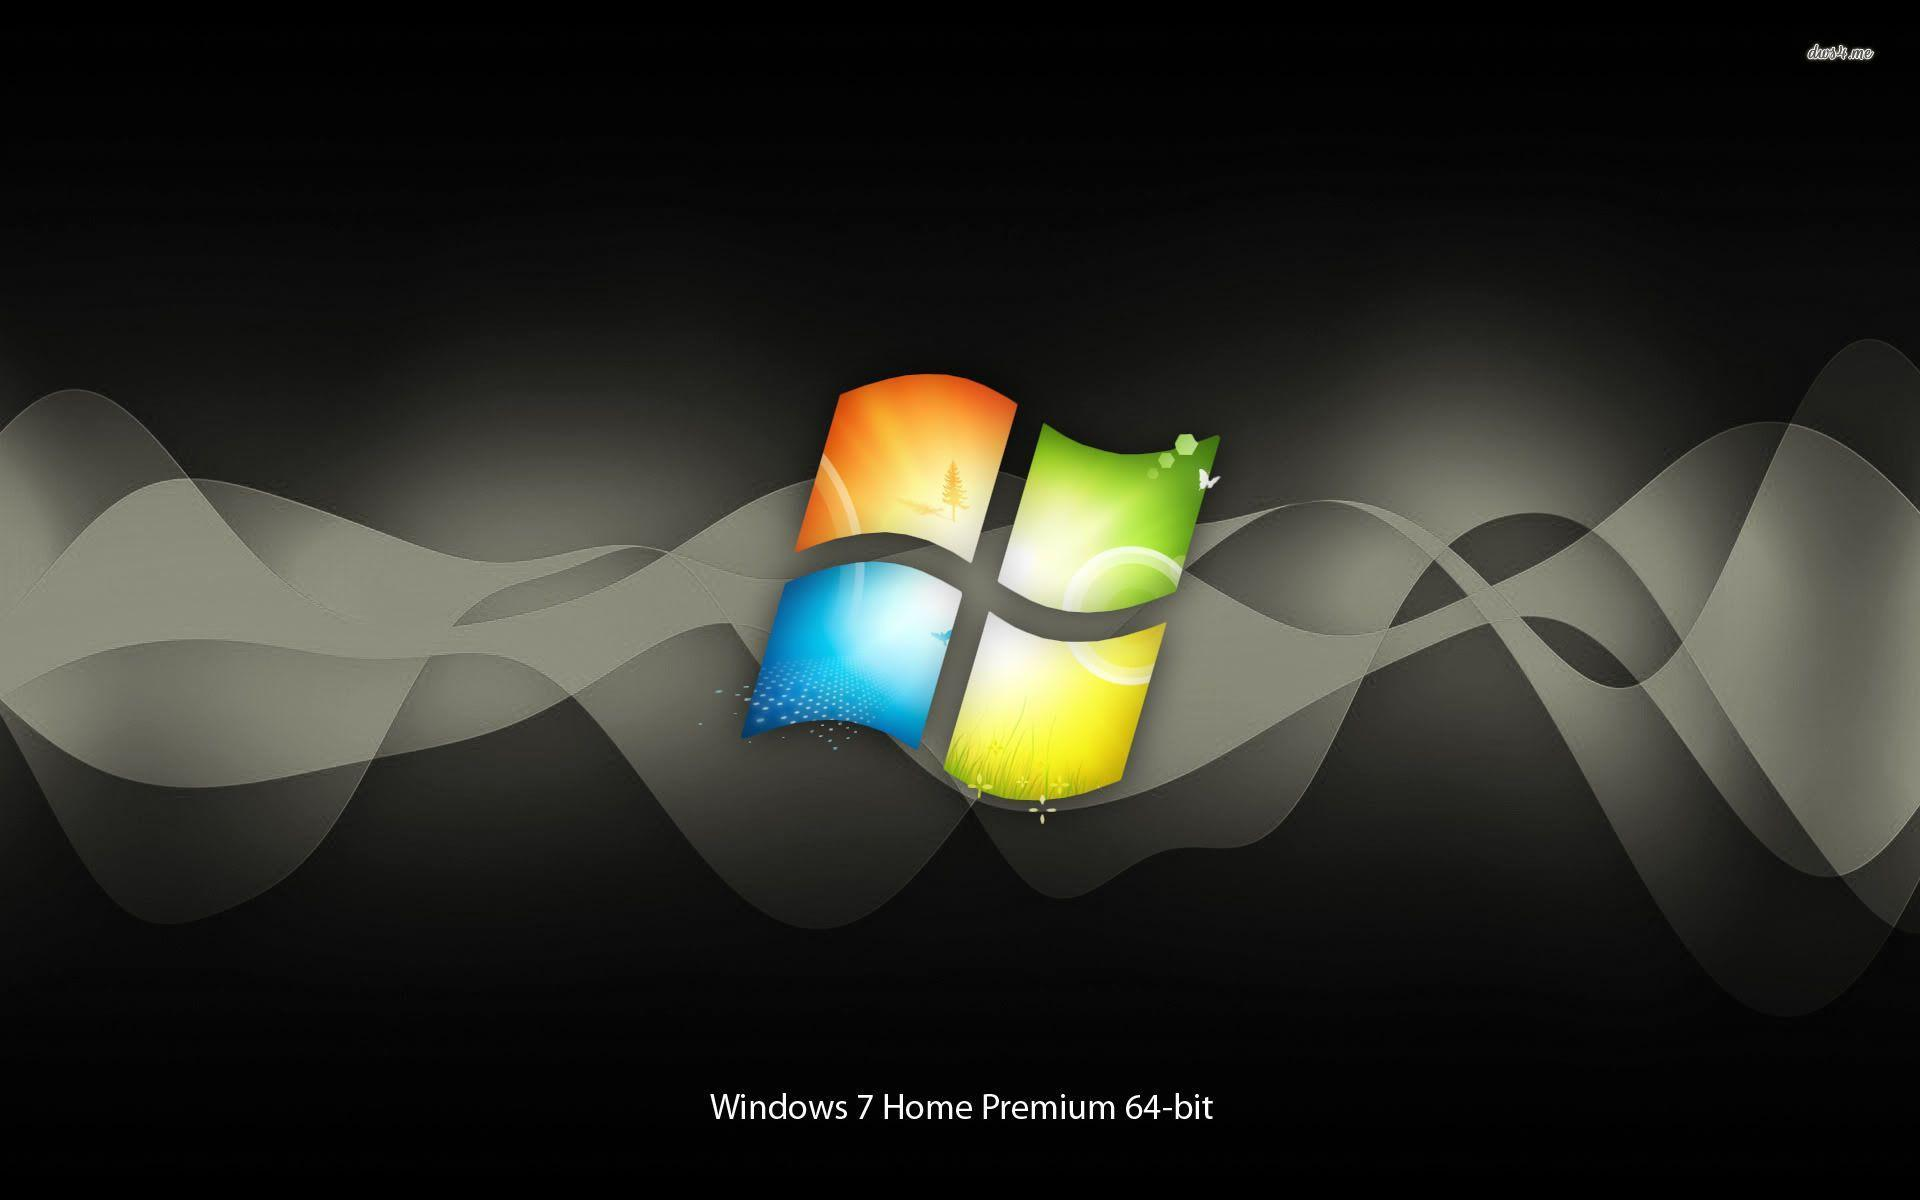 Windows 7 Home Premium Wallpapers